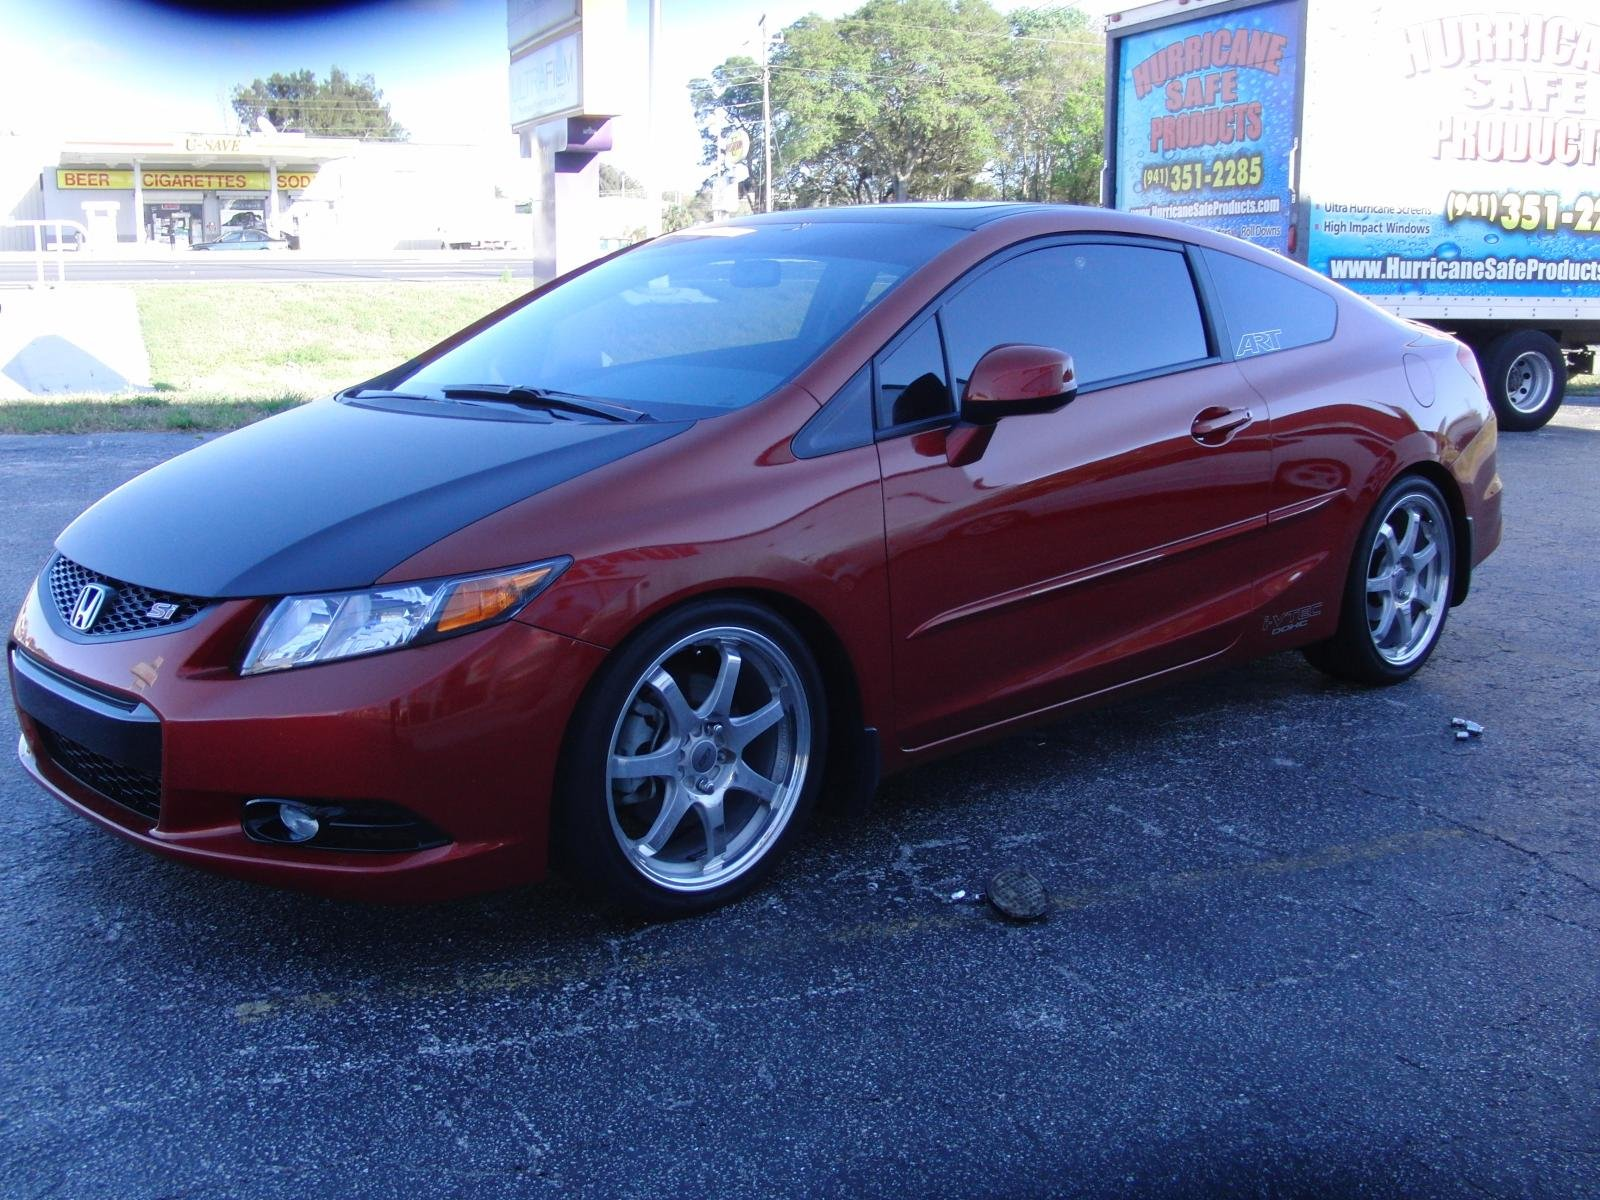 "Mugen GP 18"" wheels will fit 2012 Civic SI Coupe?"